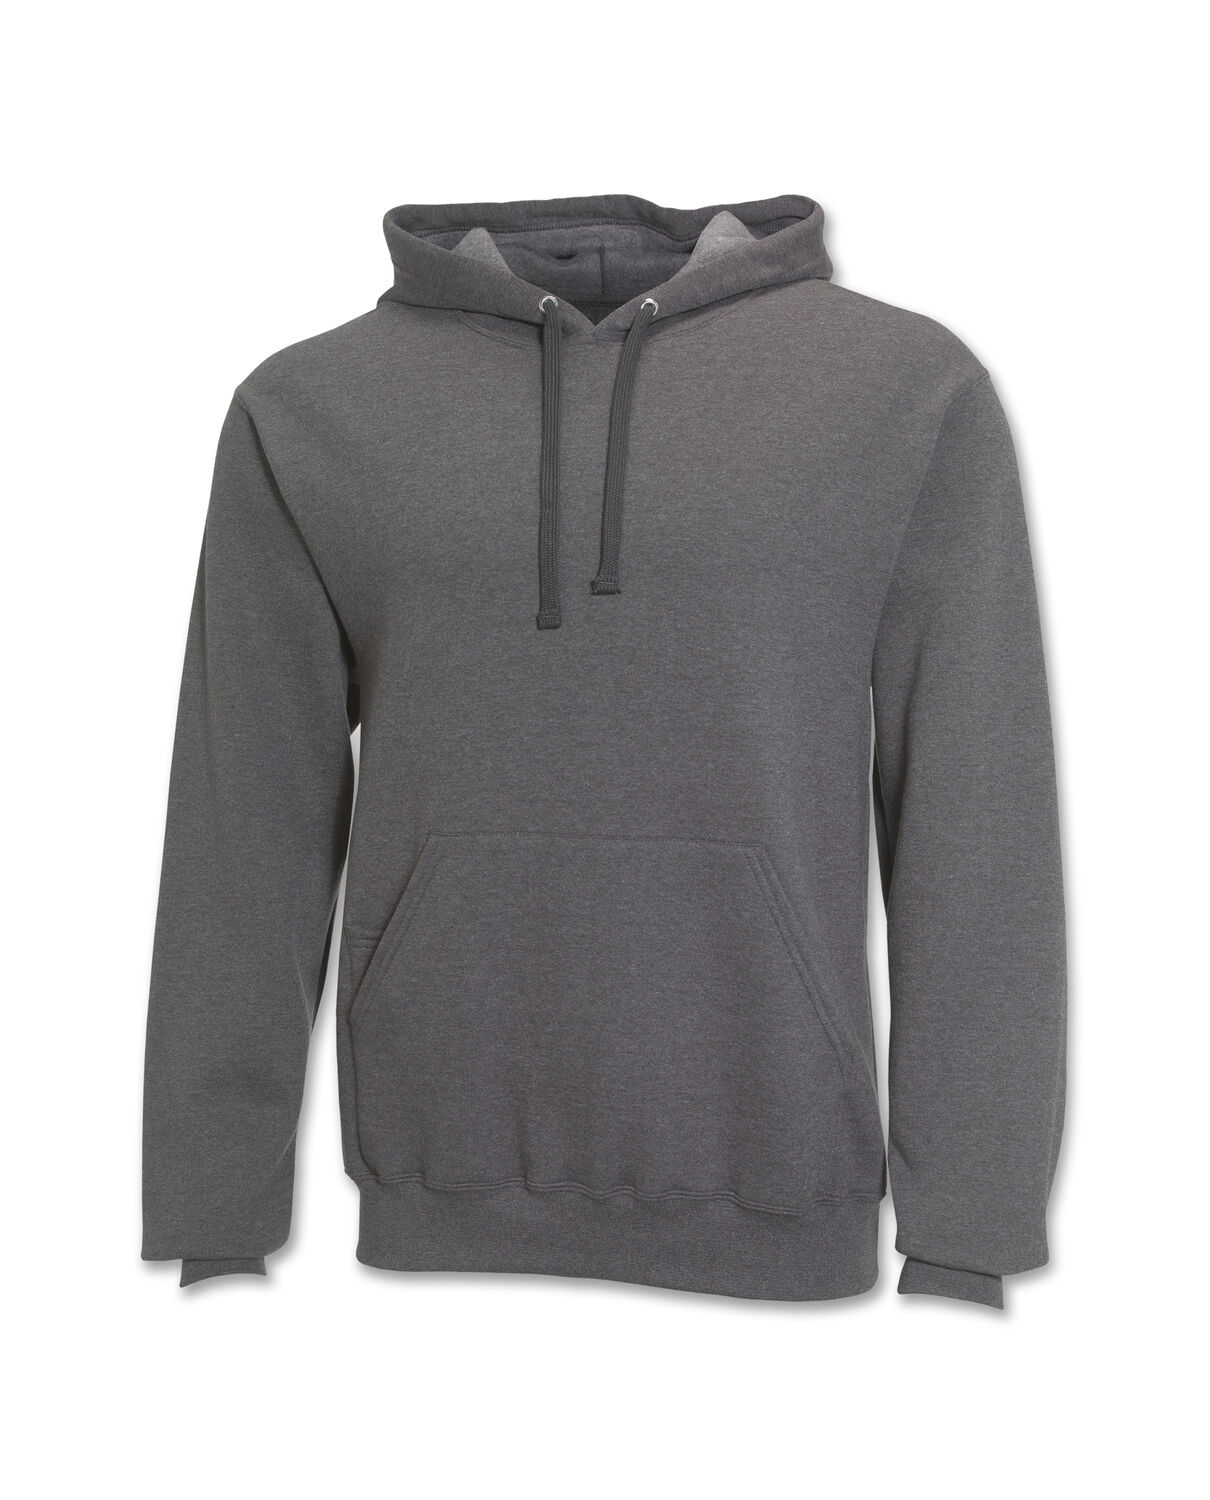 Men's Pullover Hooded Sweatshirt - Fruit US